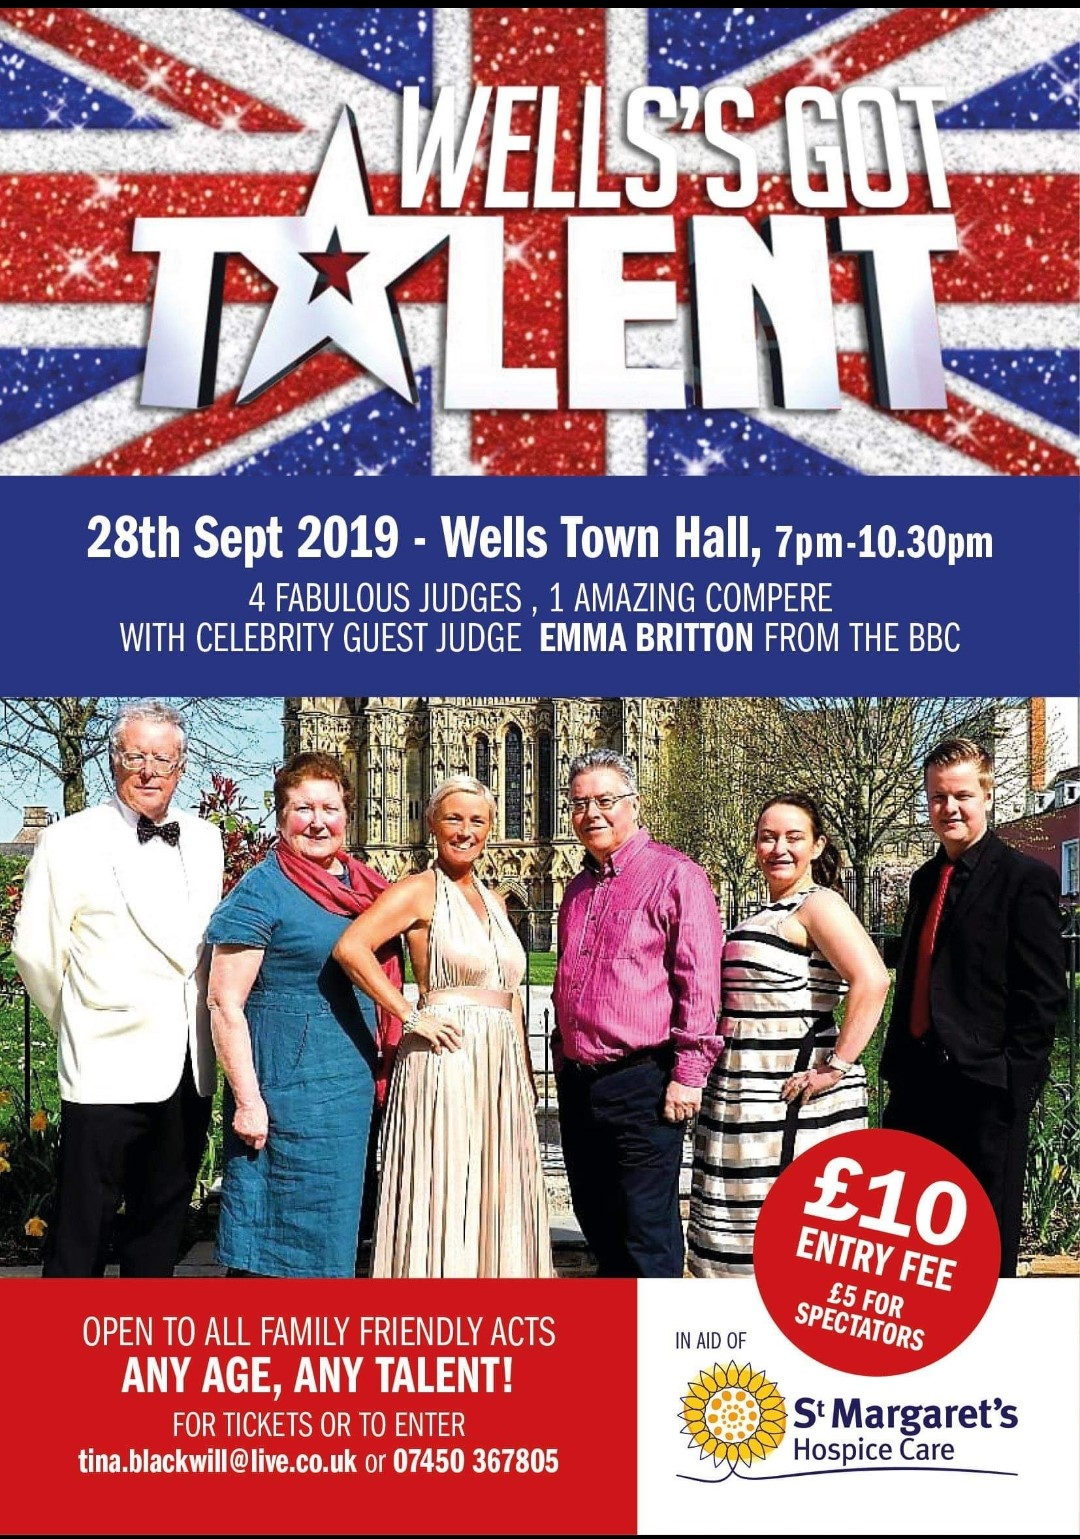 Well's Got Talent